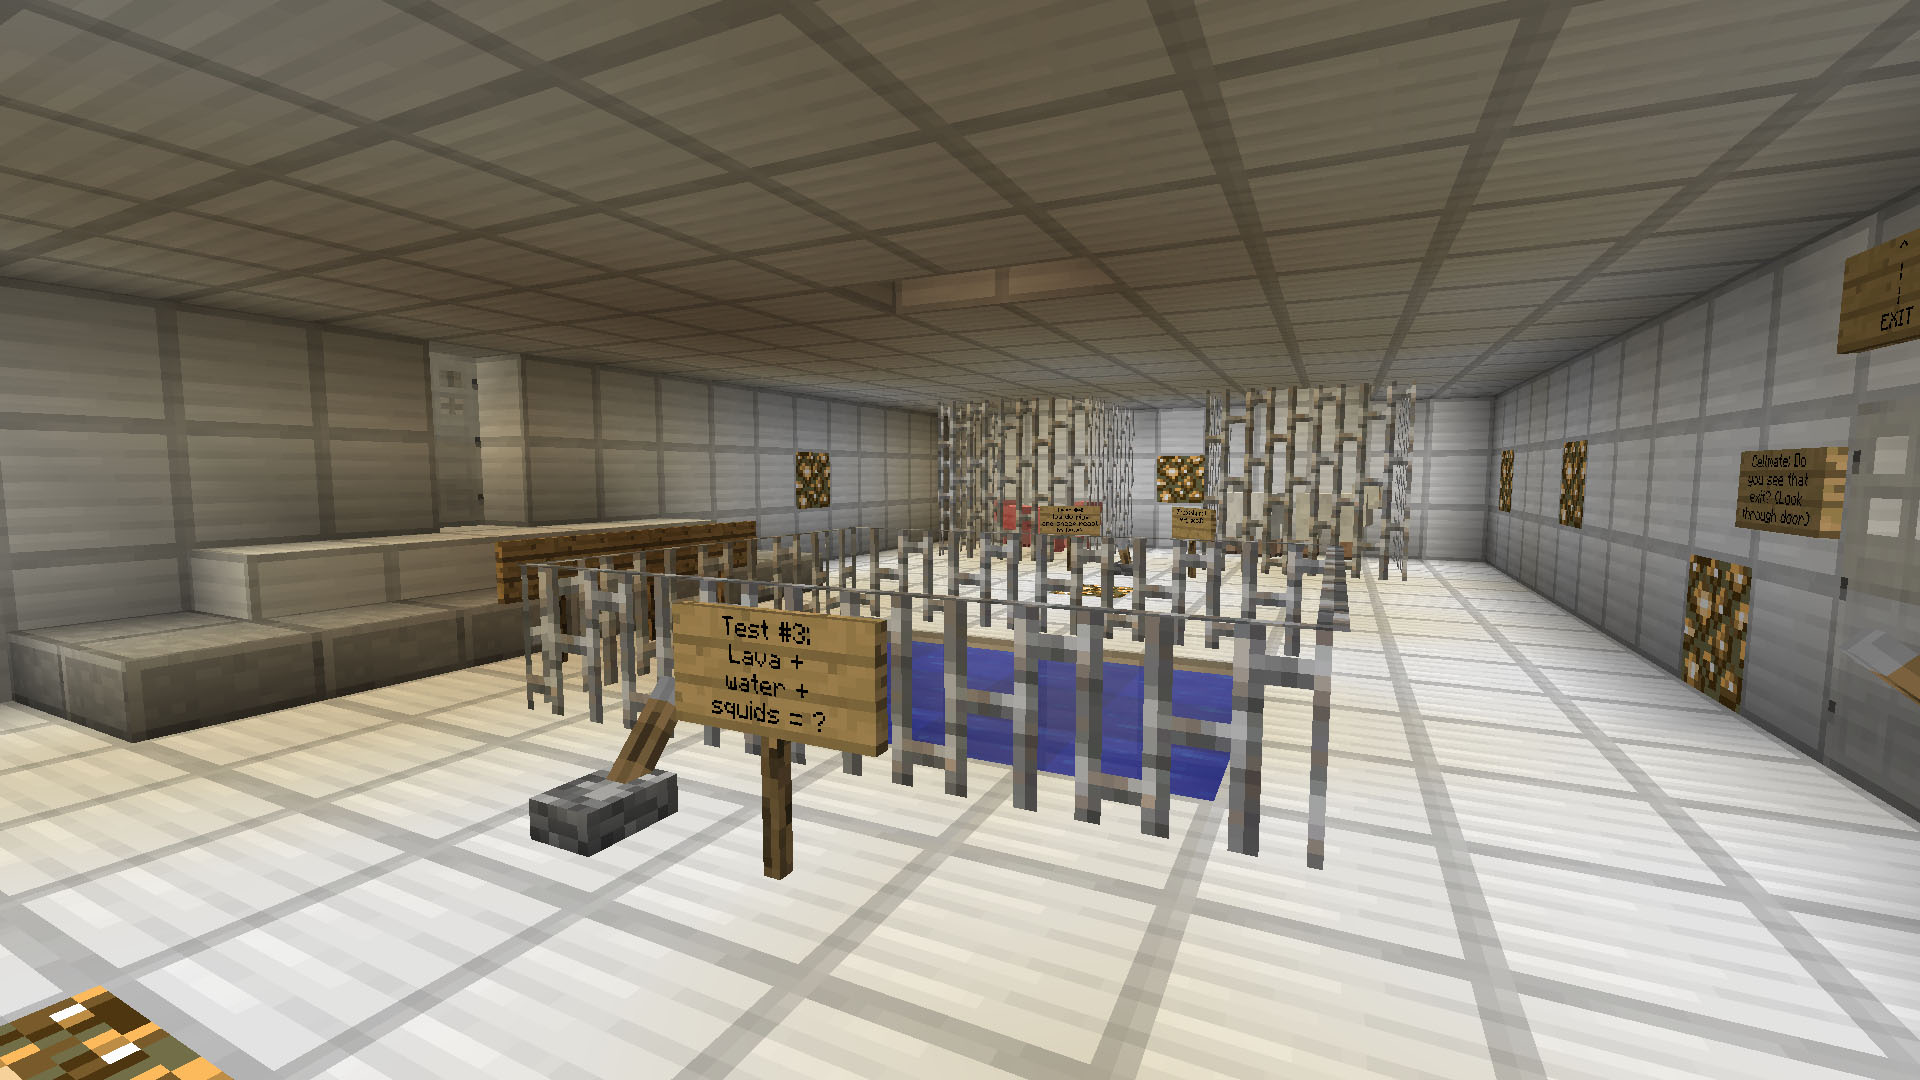 a4d89  Escape The Lab Map 2 [1.5.1] Escape The Lab Map Download